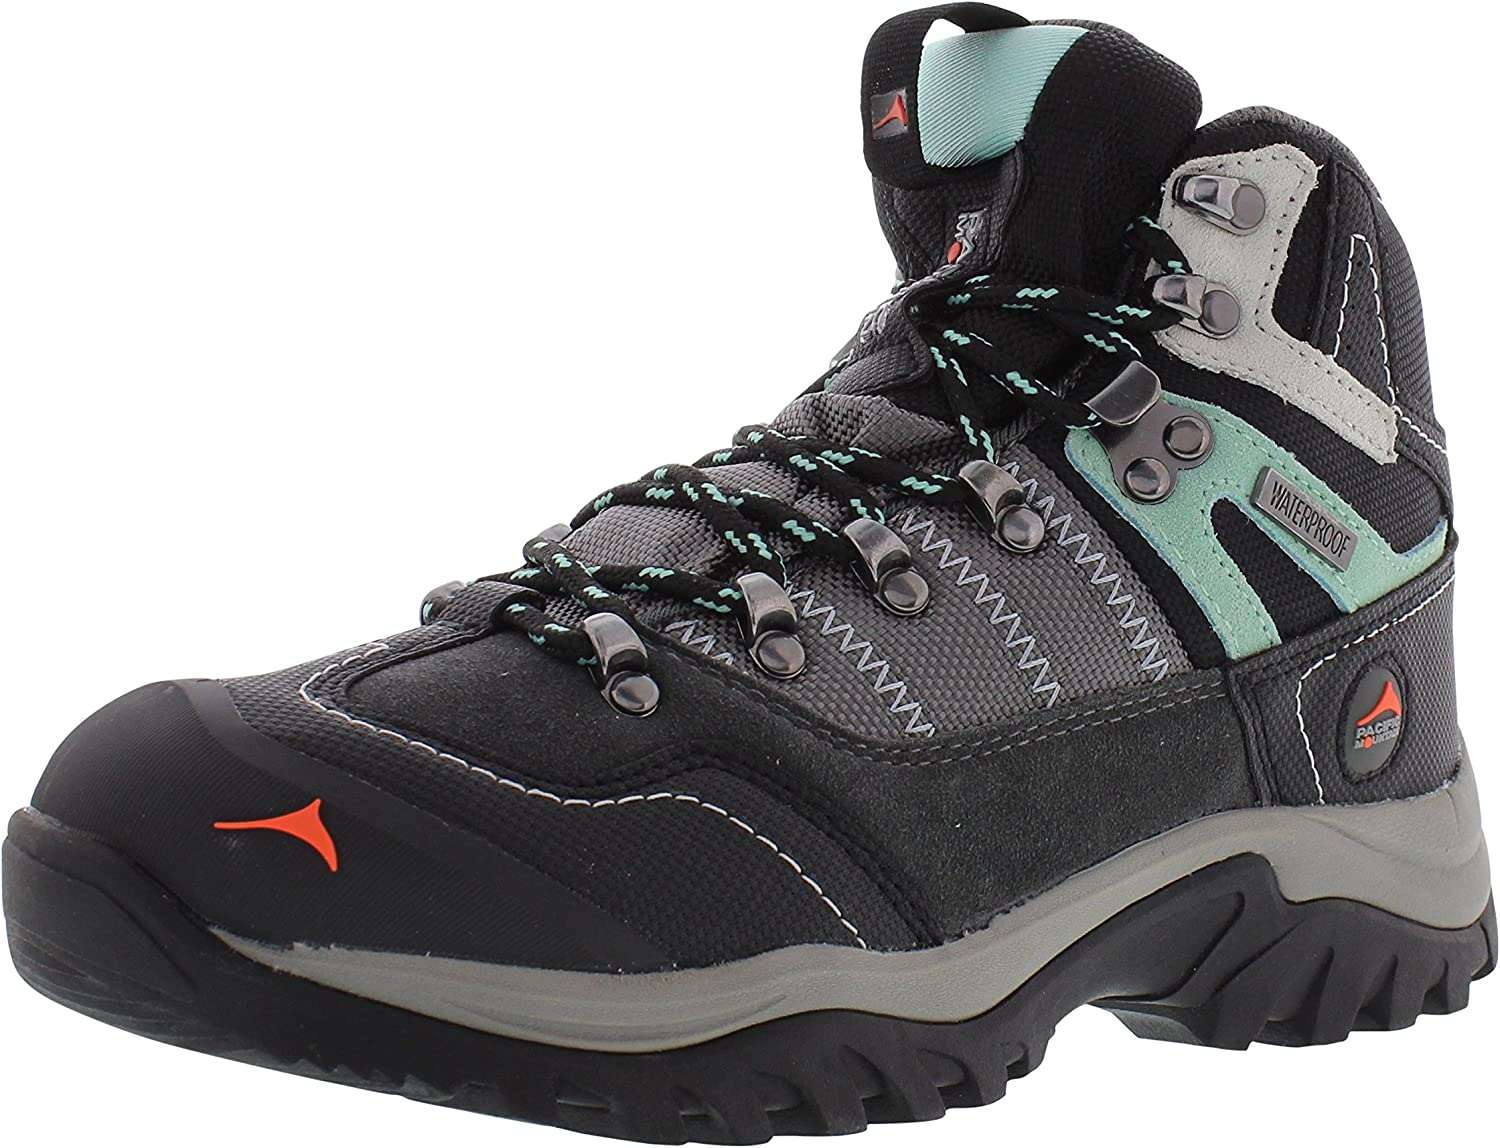 Pacific Mountain Women's Ascend Boots